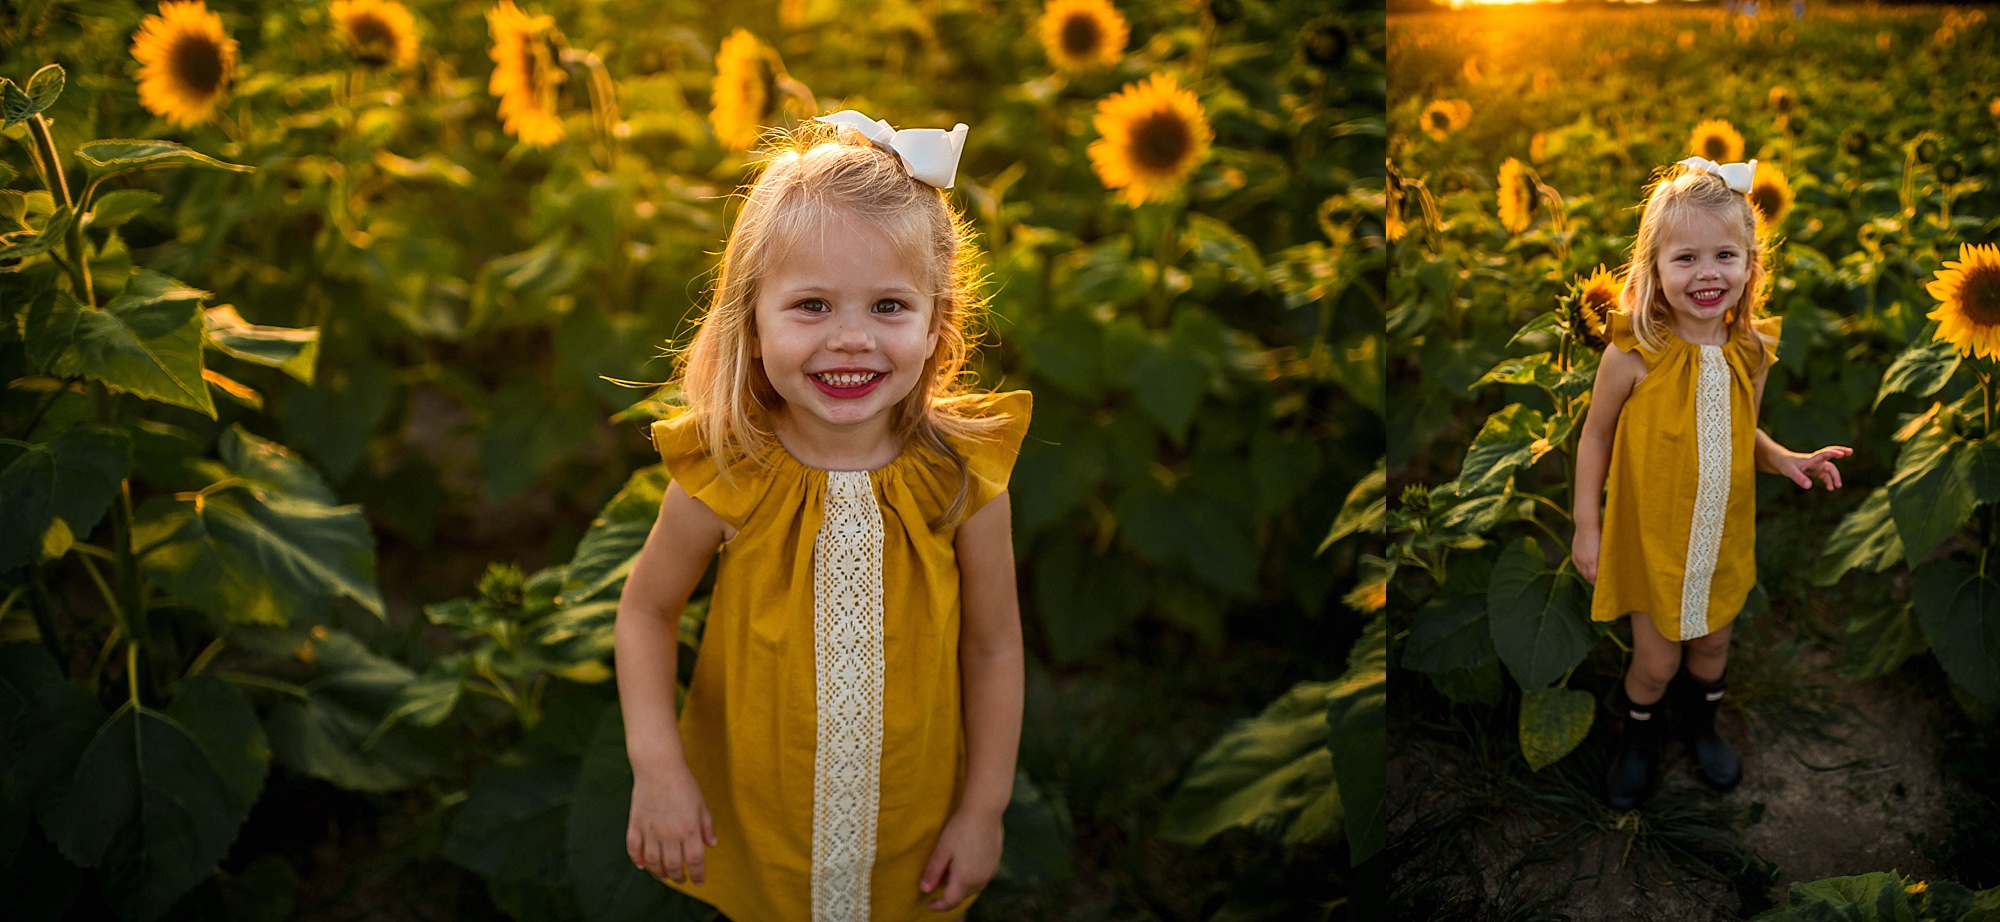 lauren-grayson-photography-cleveland-ohio-photographer-sunflower-fields-sunset-golden-hour-photo-shoot-mommy-and-me-family-child-photographer_0556.jpg